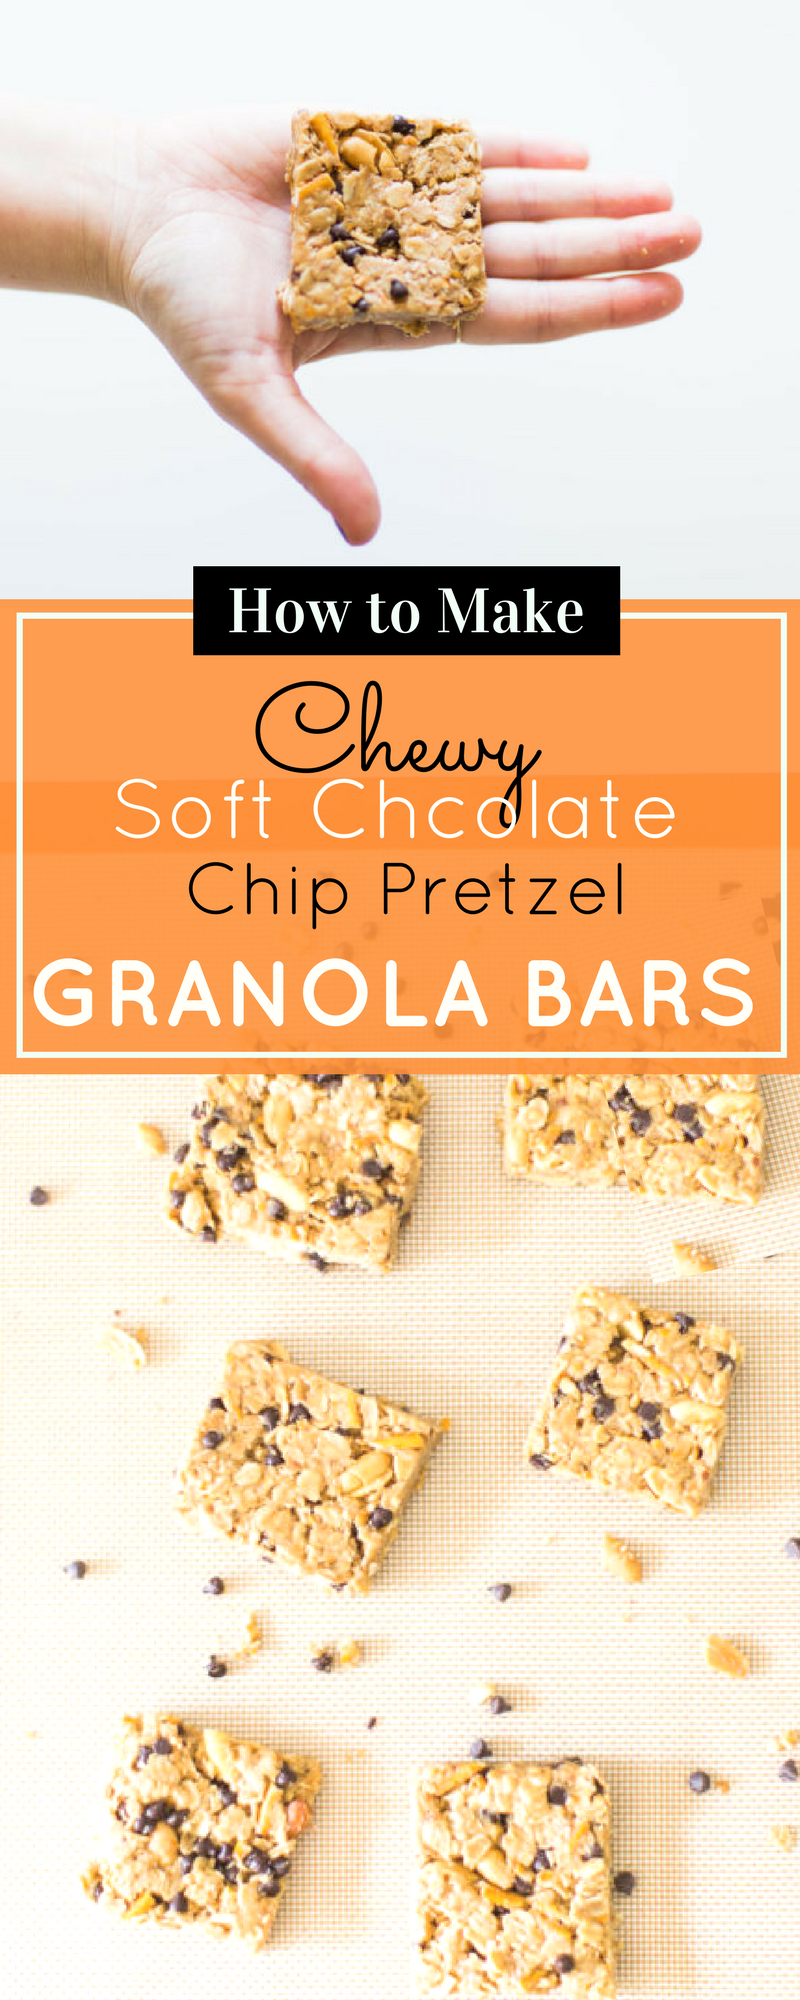 How to make our favorite dairy-free soft chocolate chip pretzel granola bars. These easy homemade chewy granola bars are great for snacking on the go! | glitterinc.com | @glitterinc